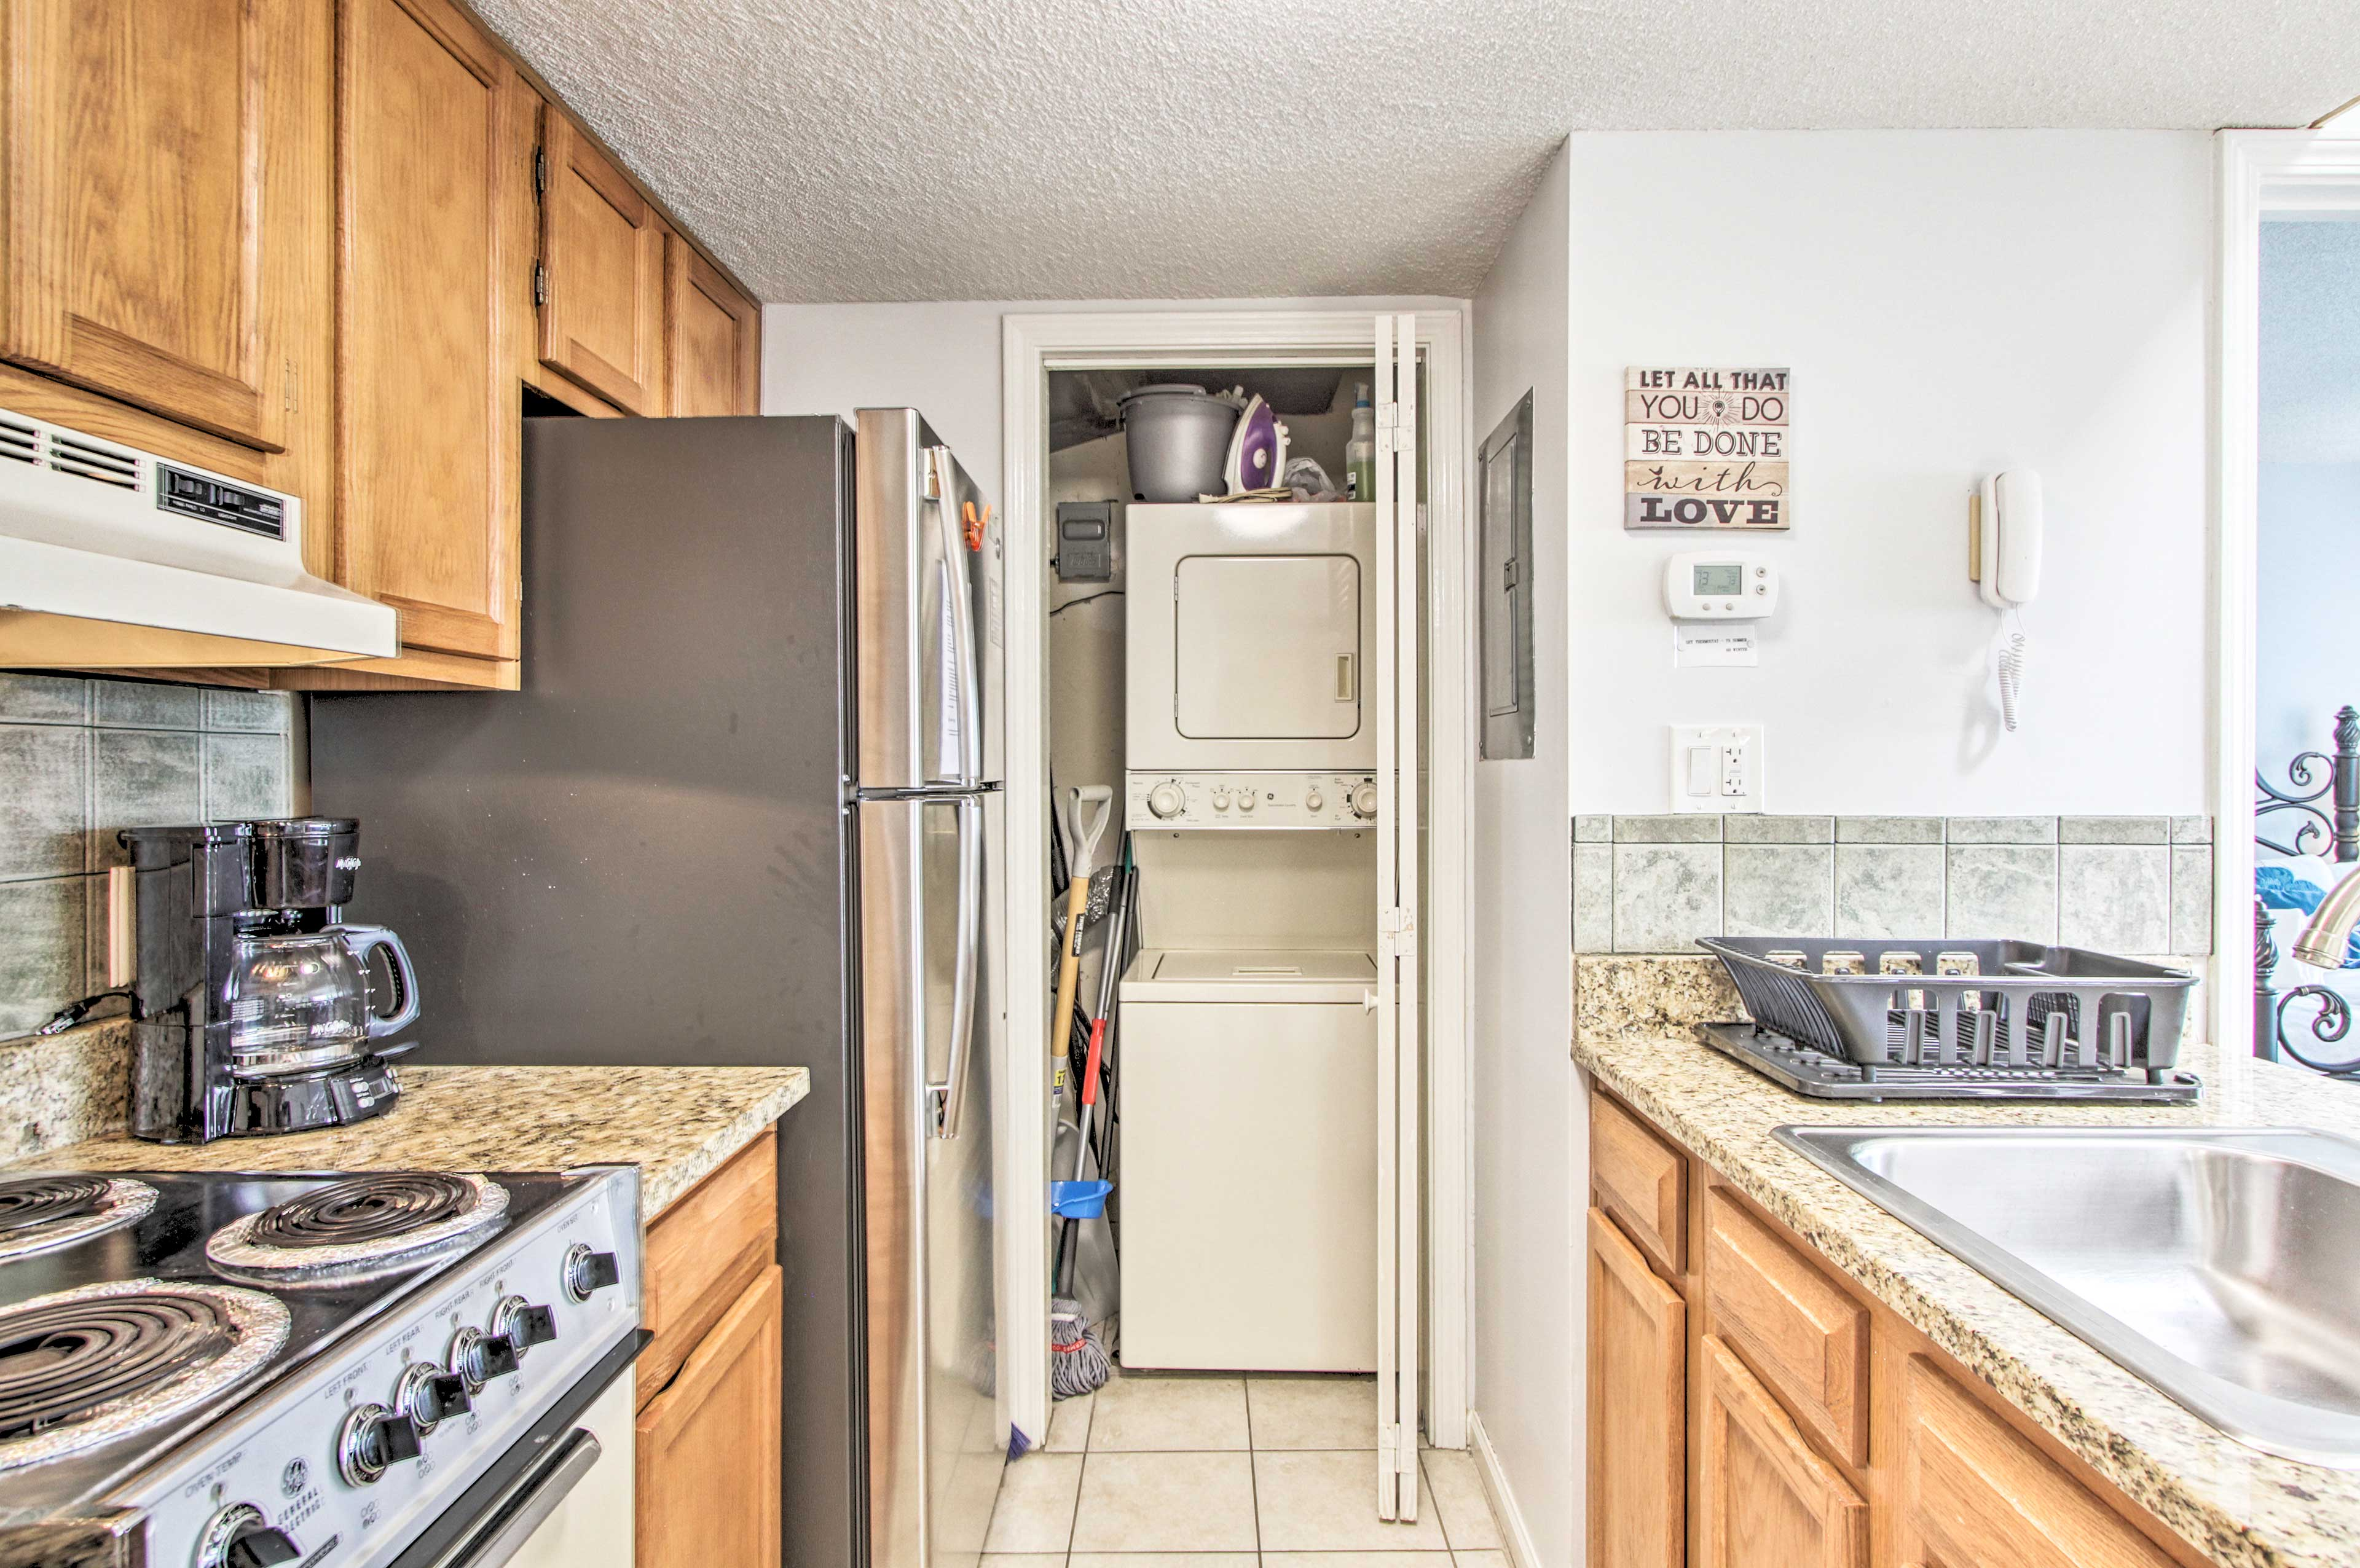 The condo now features in-unit laundry machines!